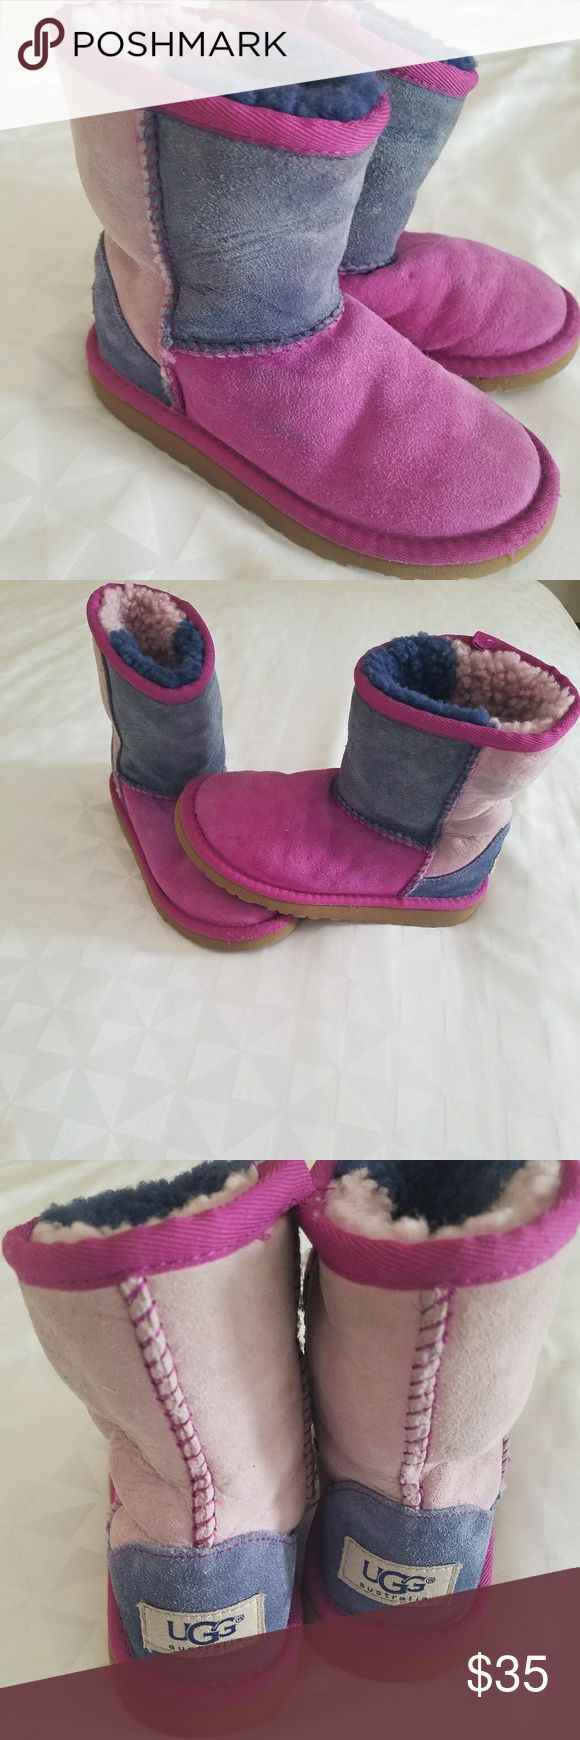 Girls Pink &  Blue UGG Boots See all pics. Used condition but still lots of life and love left in them.  Bottom of shoes in GREAT shape UGG Shoes Boots